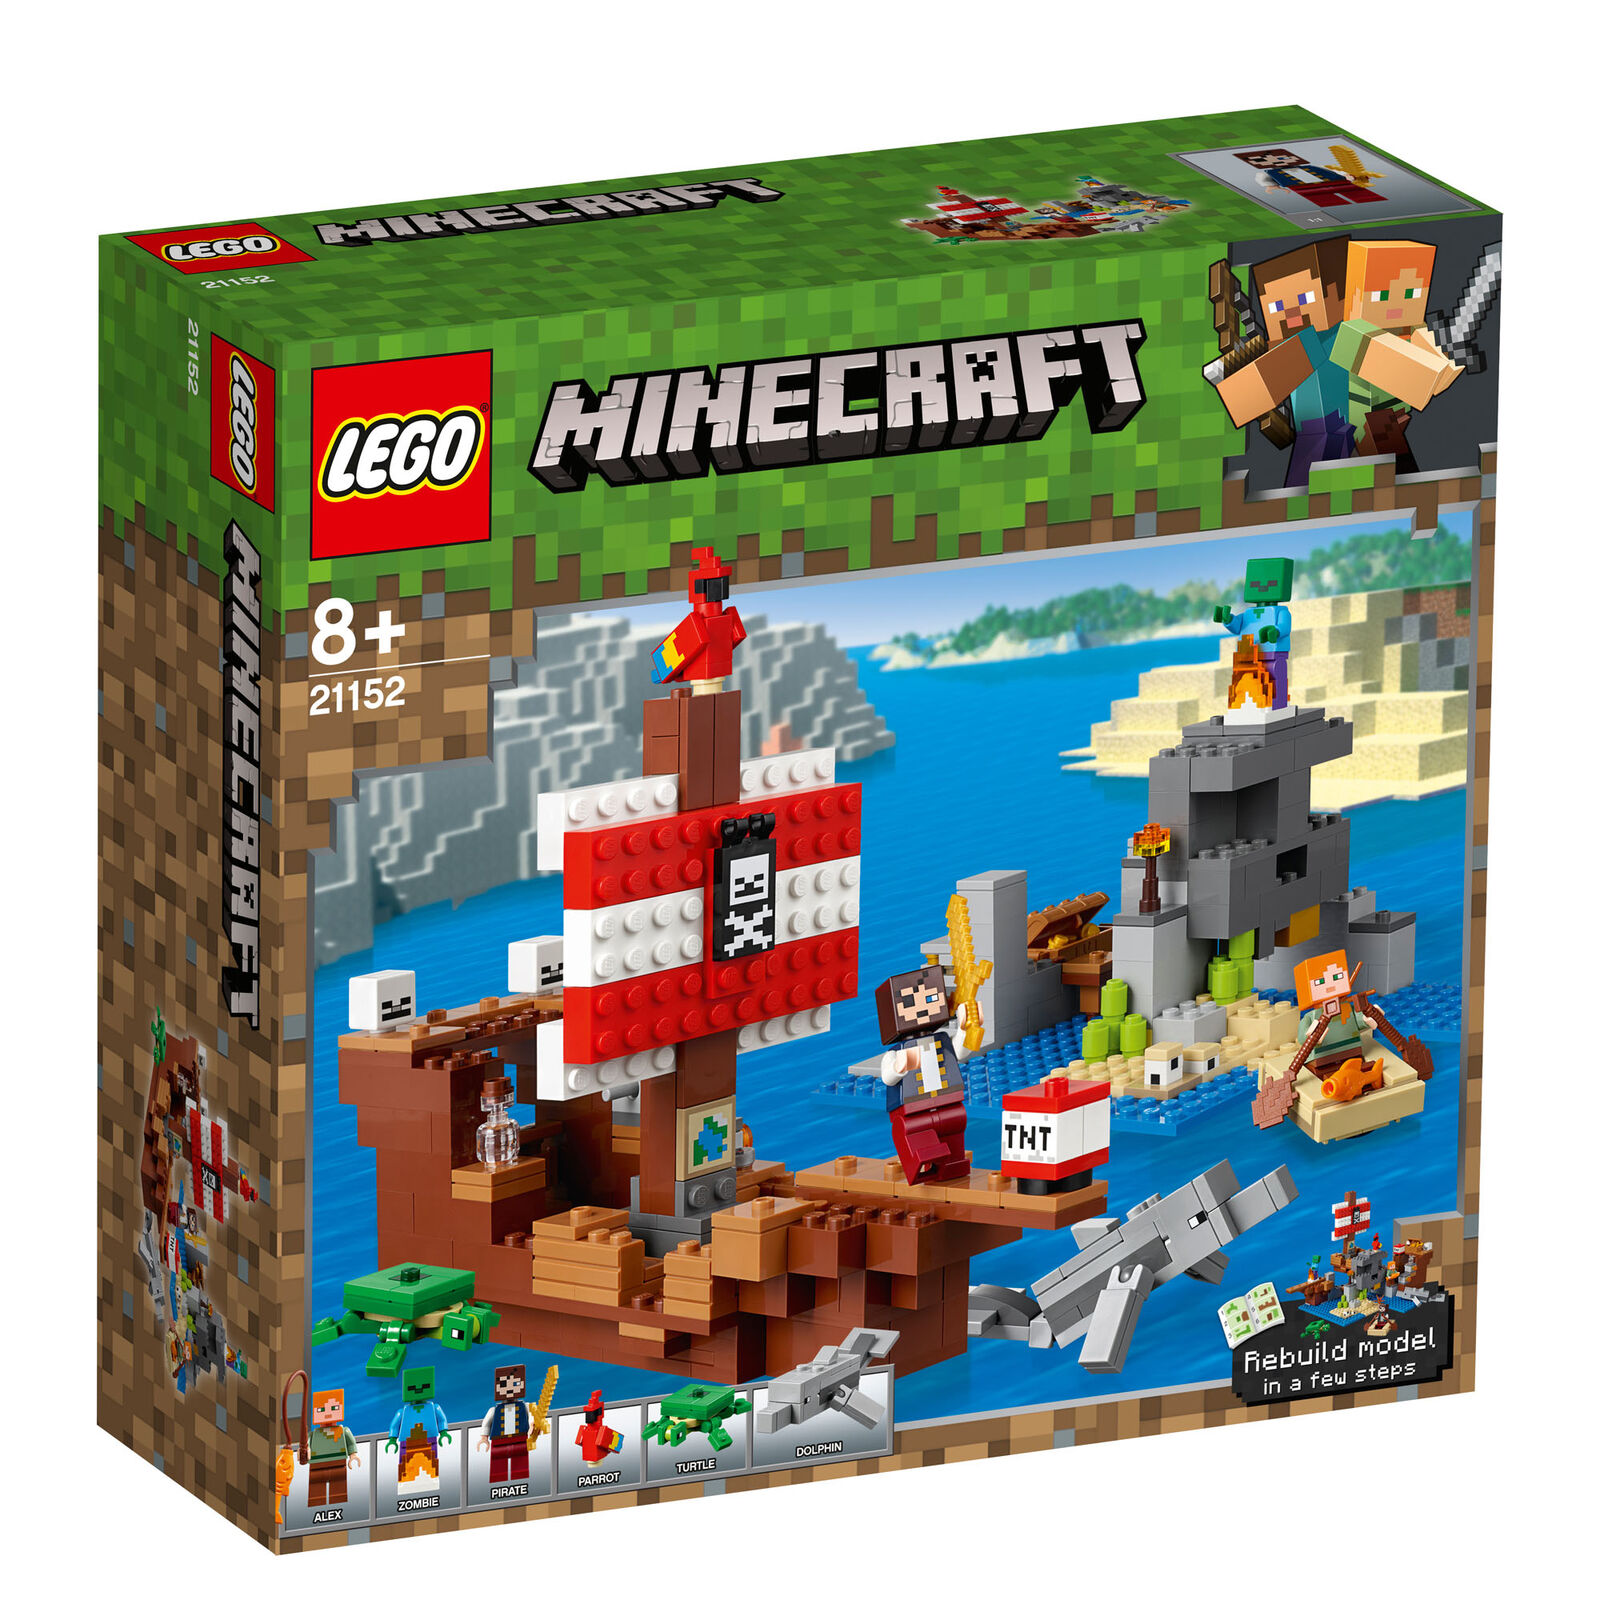 21152 LEGO Minecraft The Pirate Ship Adventure Adventure Adventure 386 Pieces Age 8+ New for 2019 2bced9